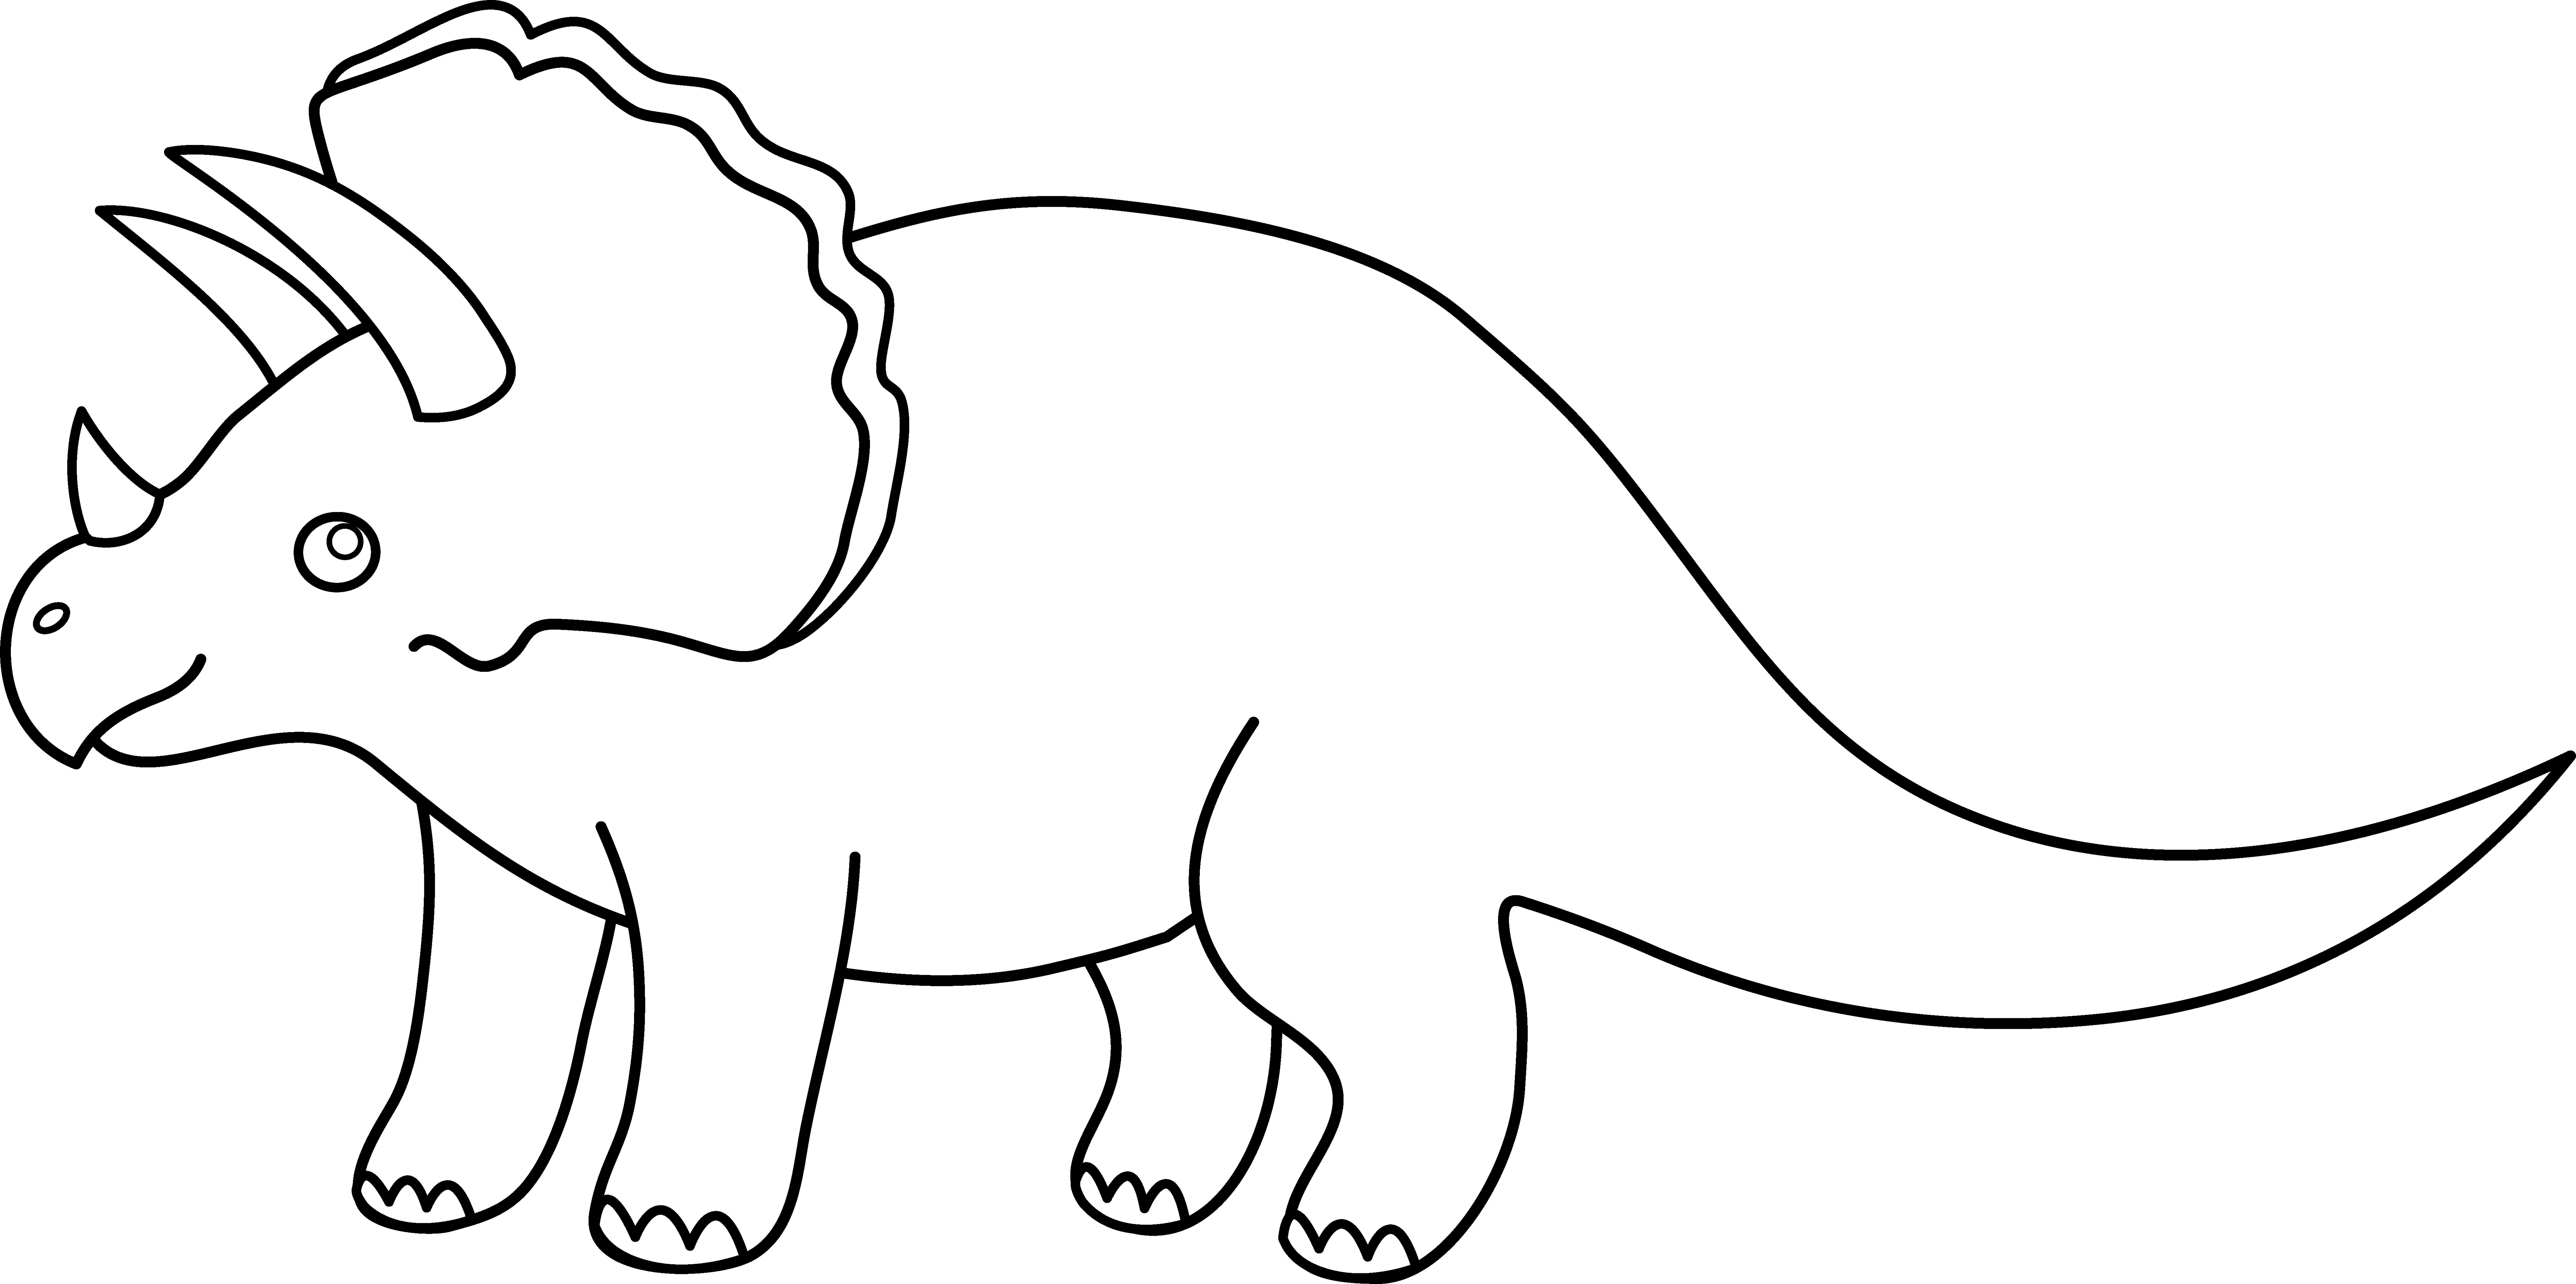 dinosaur images baby dinosaur coloring pages for preschoolers activity images dinosaur